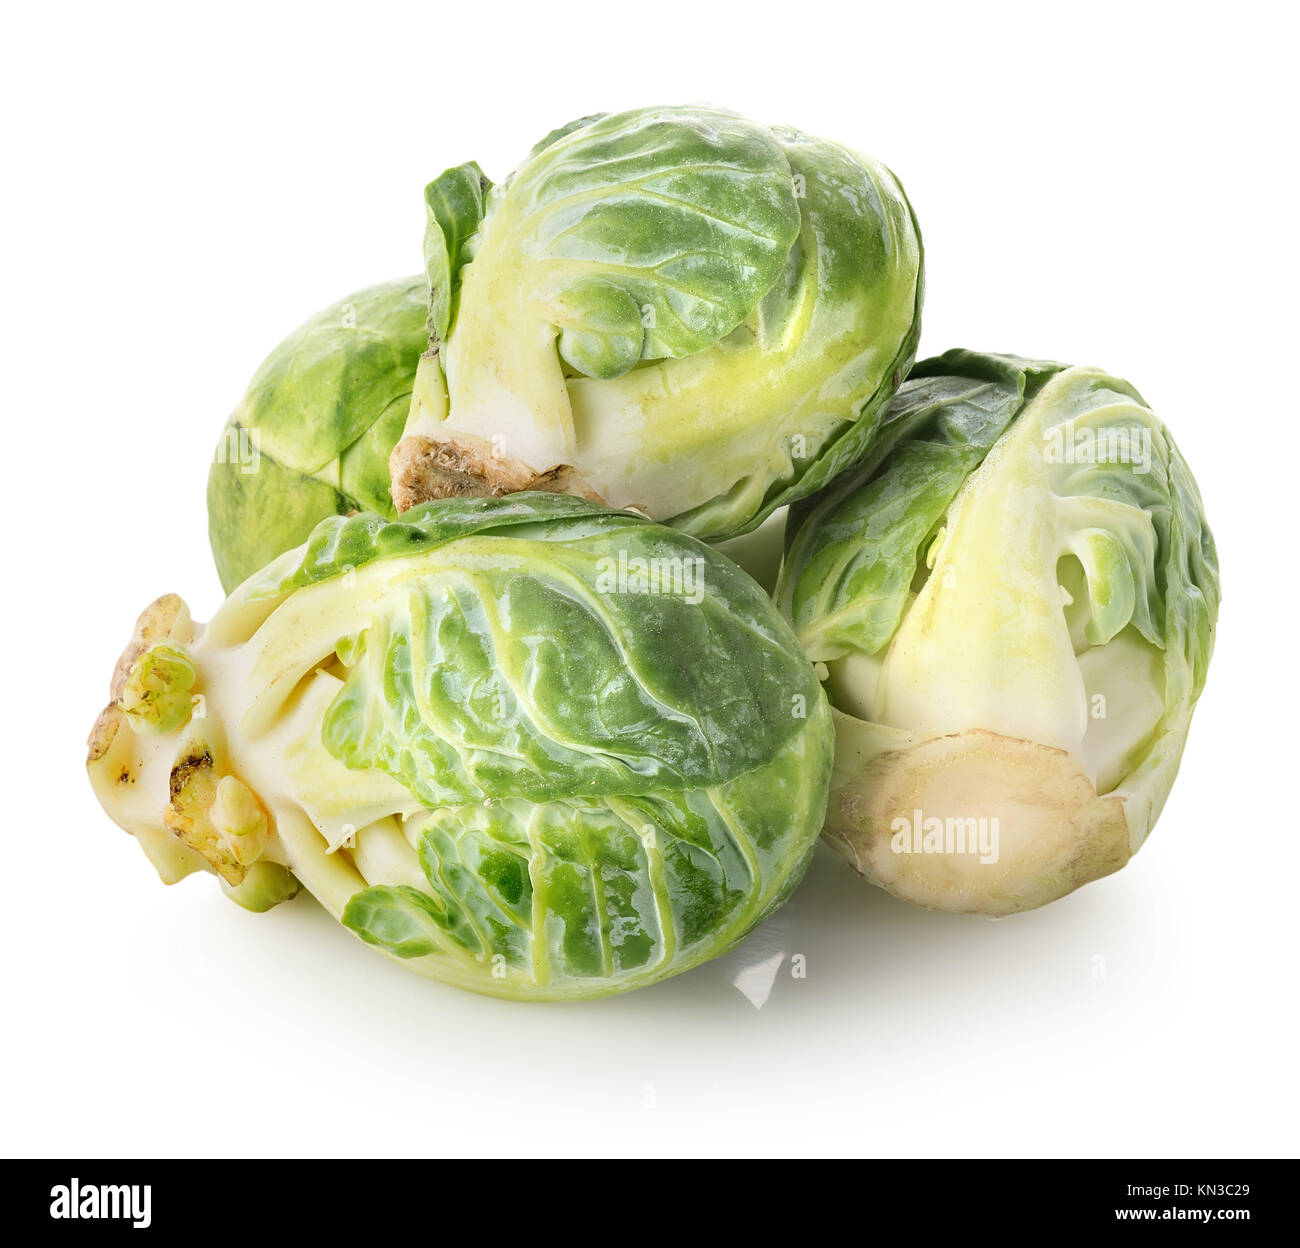 Brussel sprouts isolated on a white background. - Stock Image